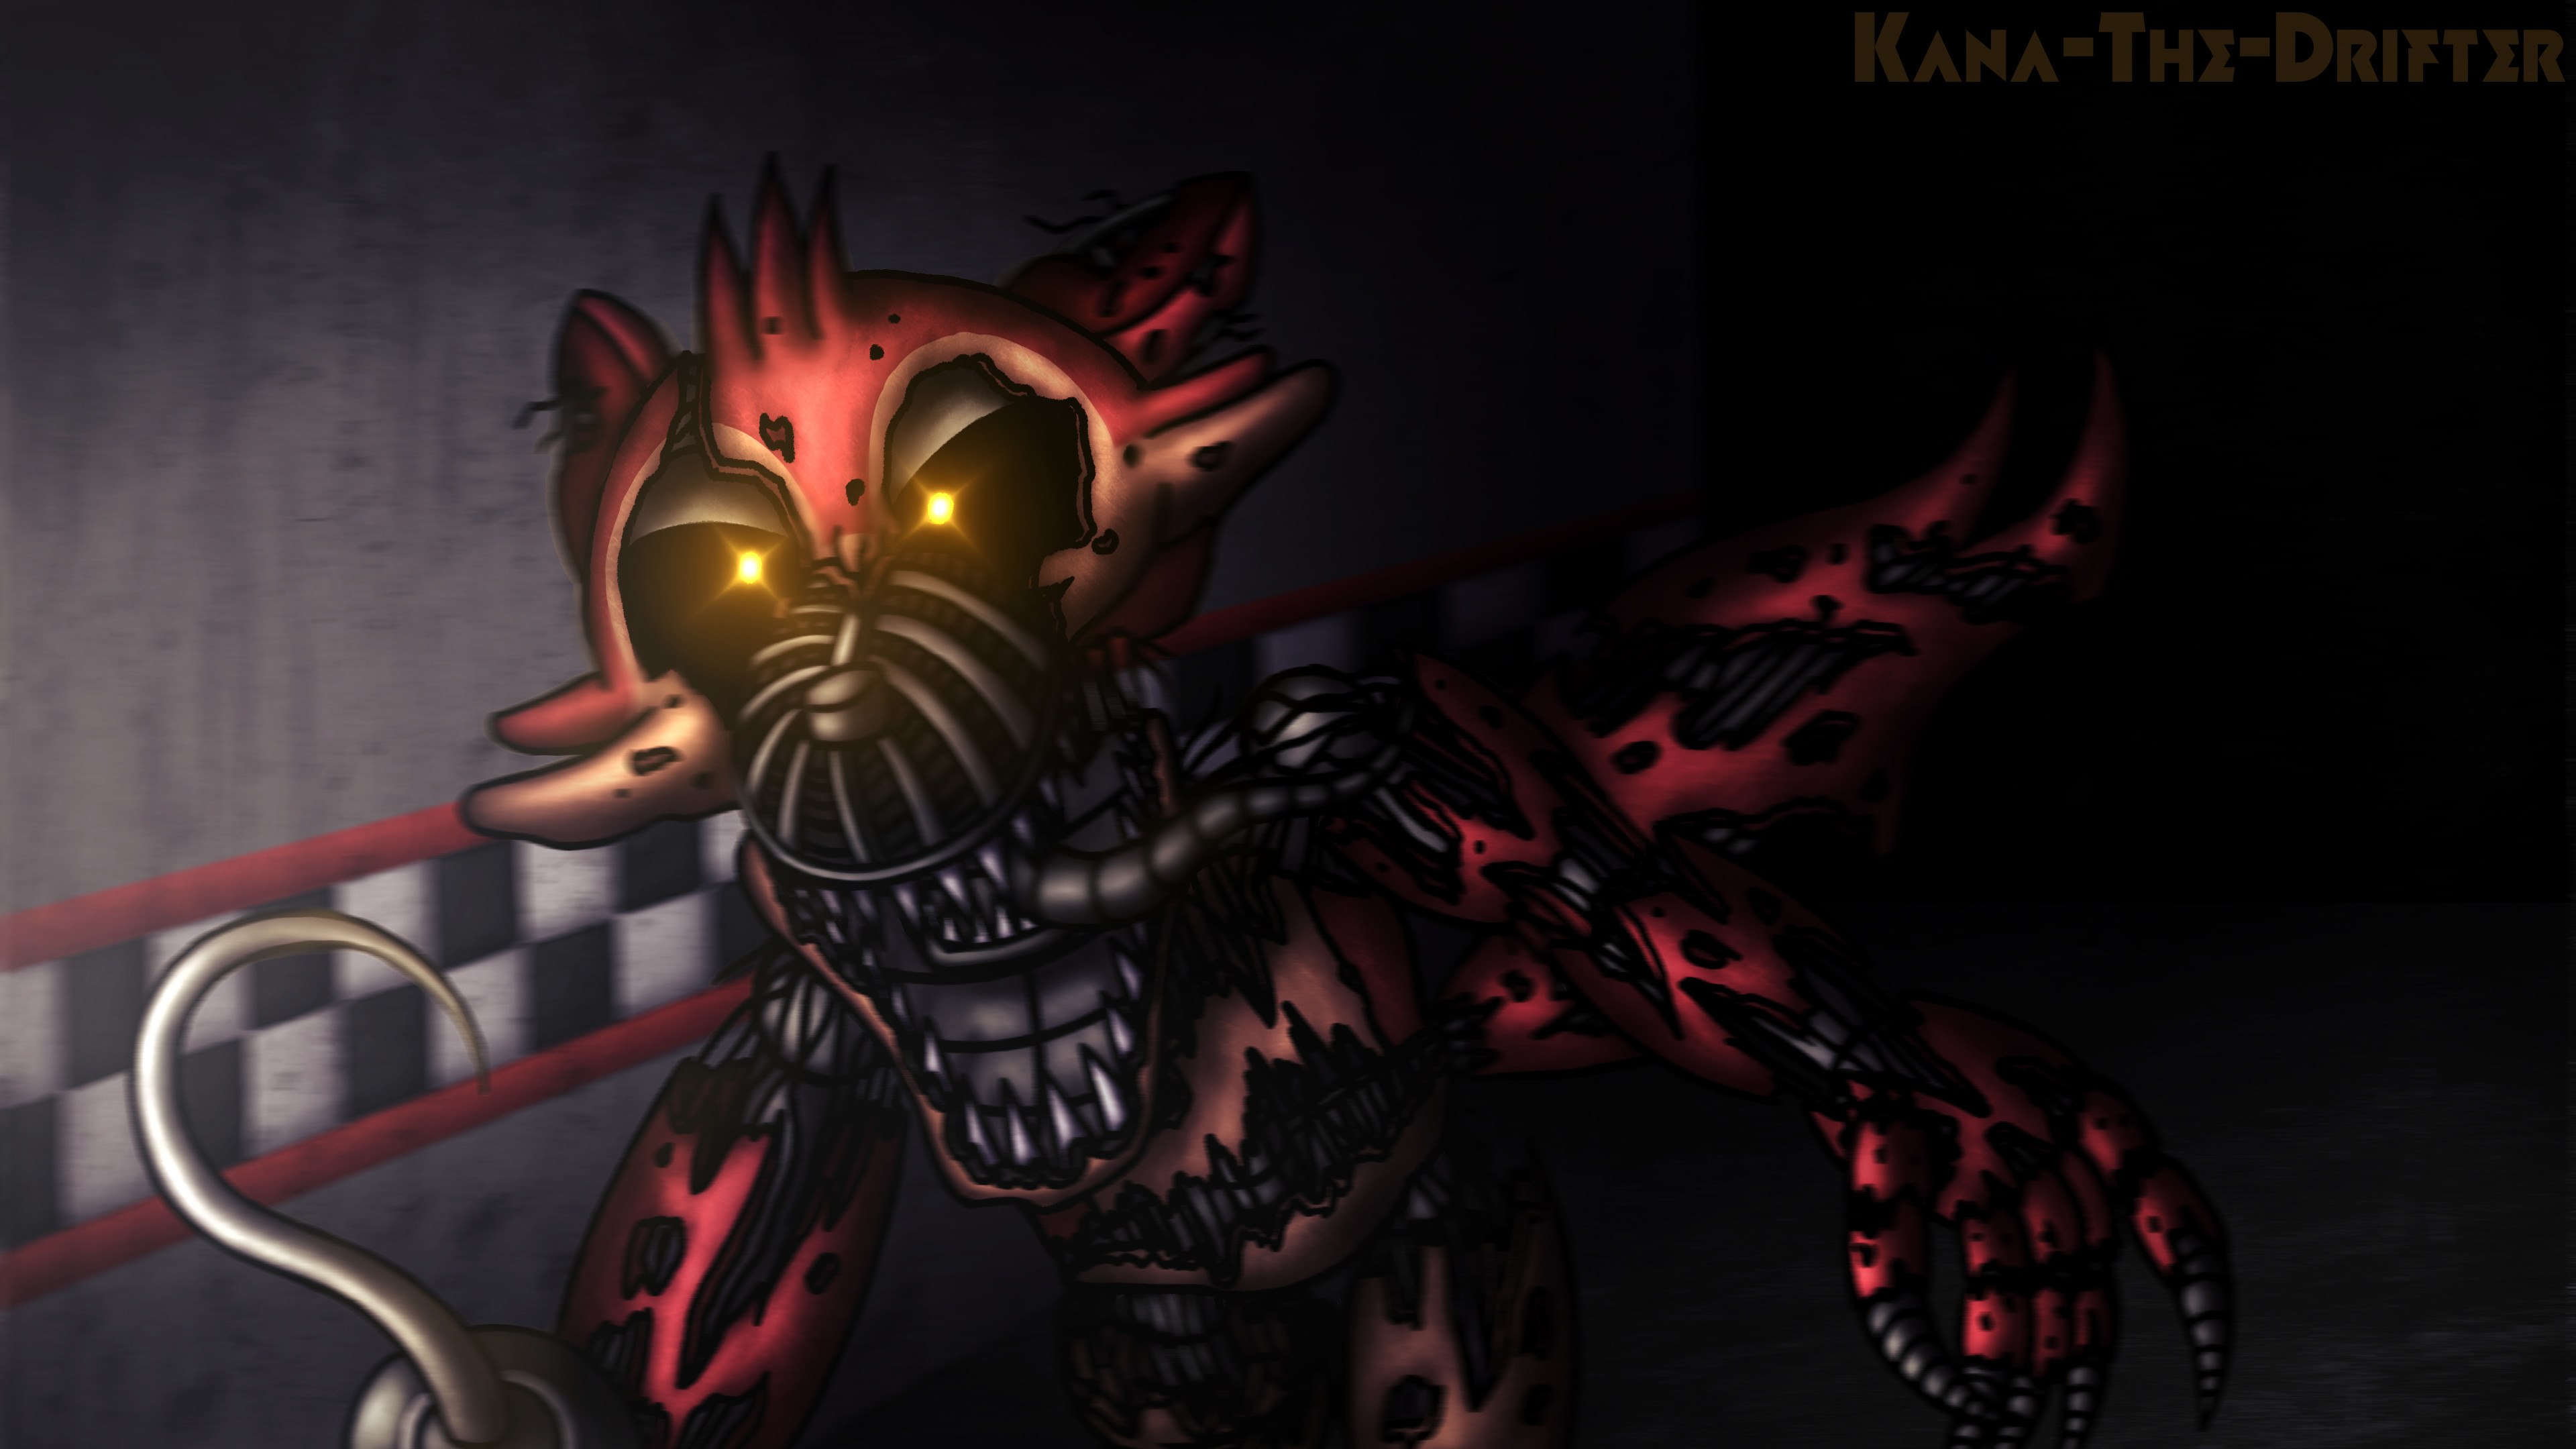 Res: 3840x2160, Don't Even Try To Escape (4K FnaF Wallpaper) by Kana-The